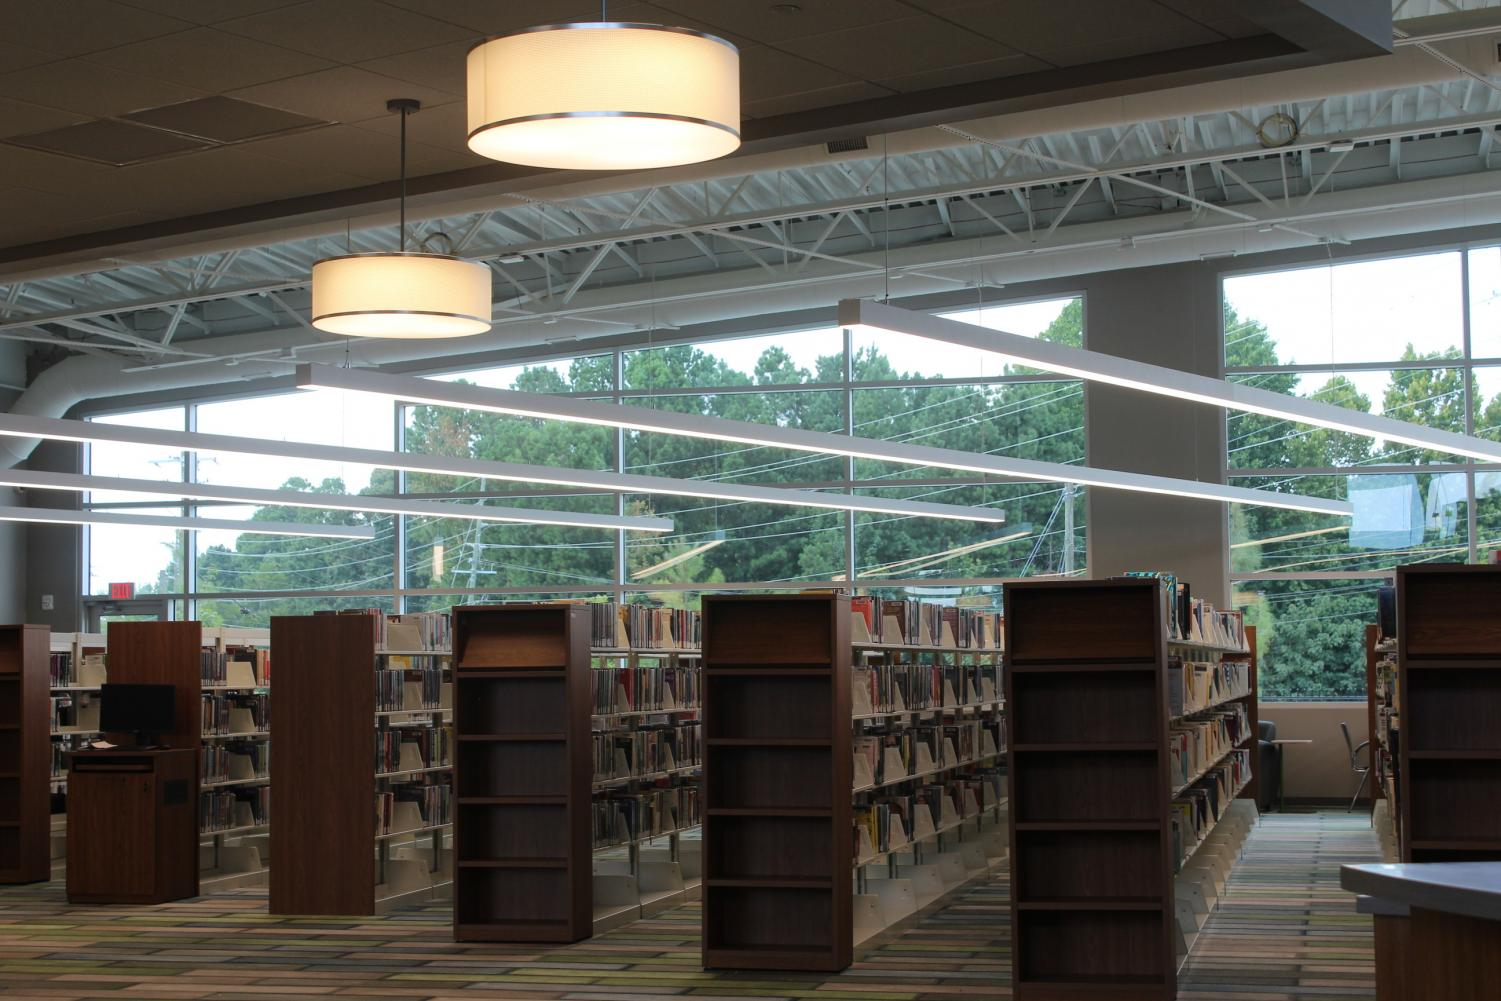 A+library%2C+the+place+to+check-out+books%2C+contains+books%2C+what+a+surprise%21+Located+in+the+Teen+Center%2C+the+Kid%E2%80%99s+area+and+the+main+section+of+the+library%2C+titles+range+from+J.K.+Rowling+to+Stephen+Hawkings+to+a+large+collection+of+DVDs.+